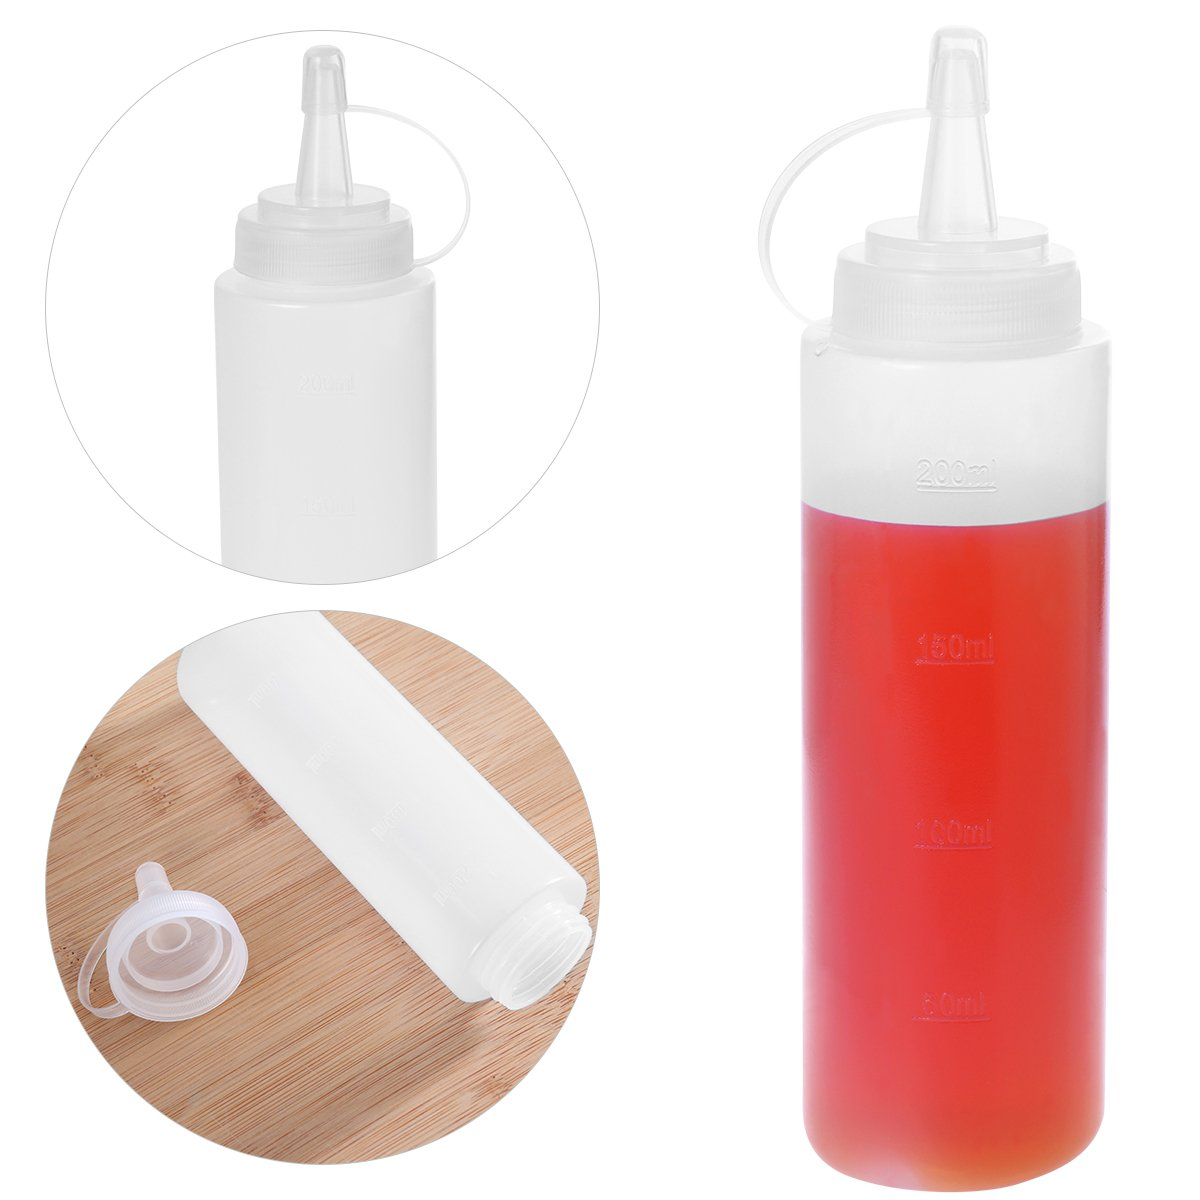 and More BESTONZON 5pcs 8oz Squeeze Condiment Squirt Bottles with Cap Perfect for Ketchup Sauces Storage BBQ Mustard Dressing